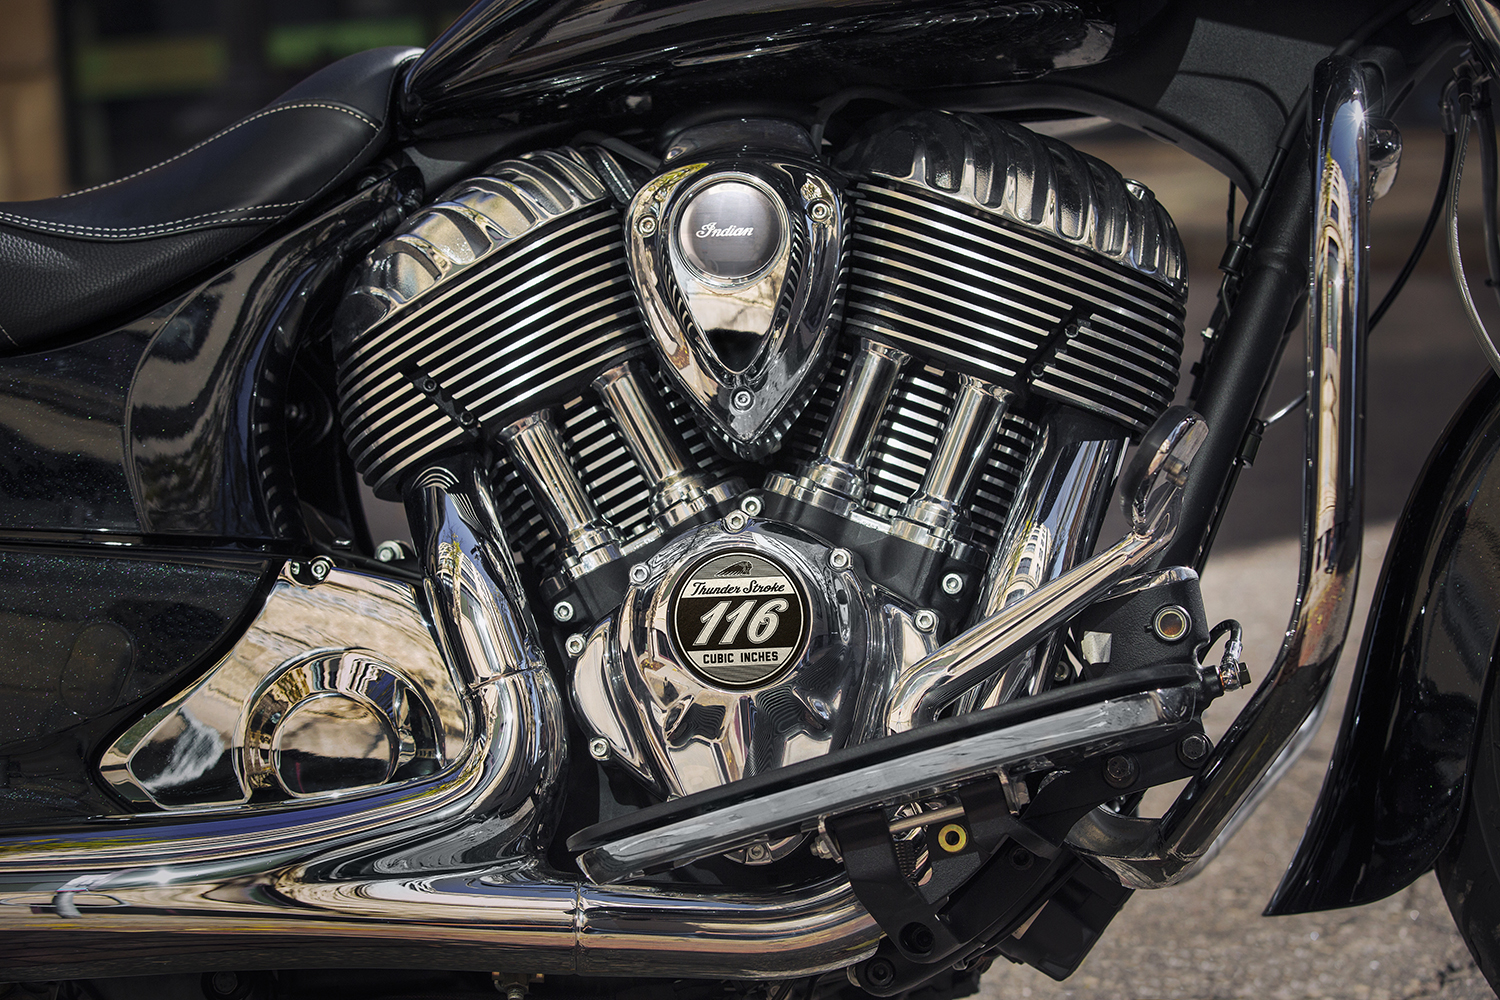 Indian Motorcycle Takes The Thunder Stroke 111 To Another Level With New 116-Cubic -3166